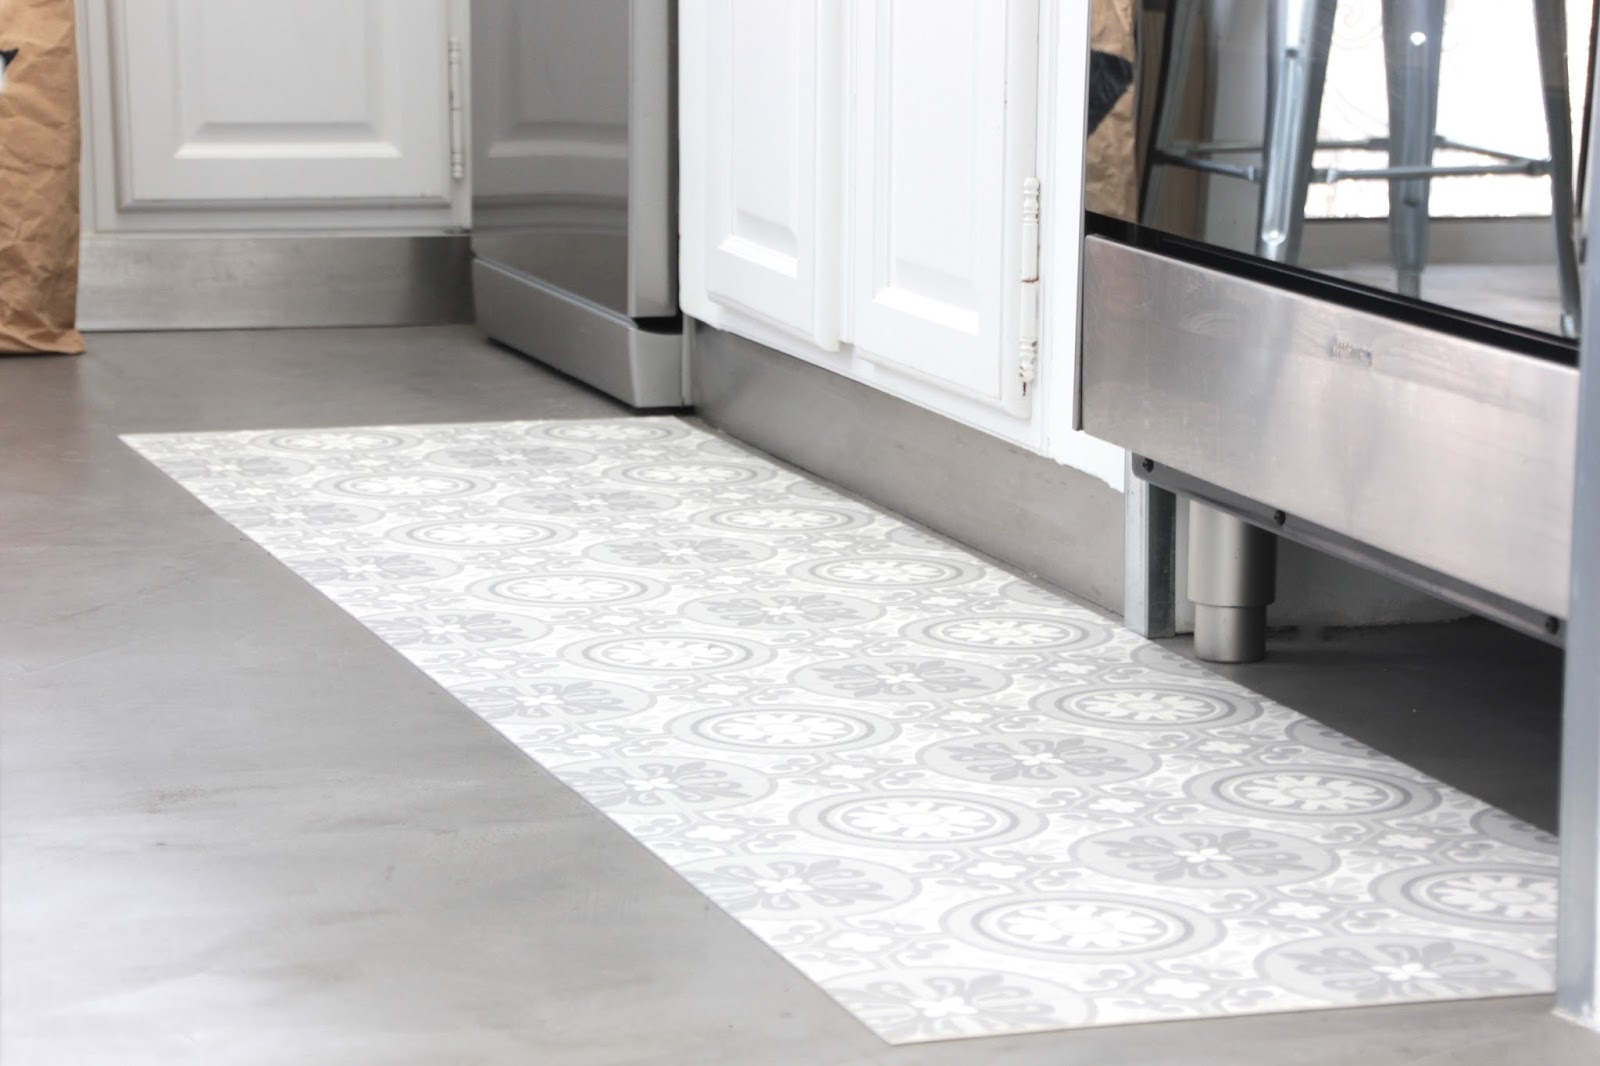 Regardsetmaisons mon tapis vinyle carreaux de ciment diy for Tapis de cuisine en vinyl